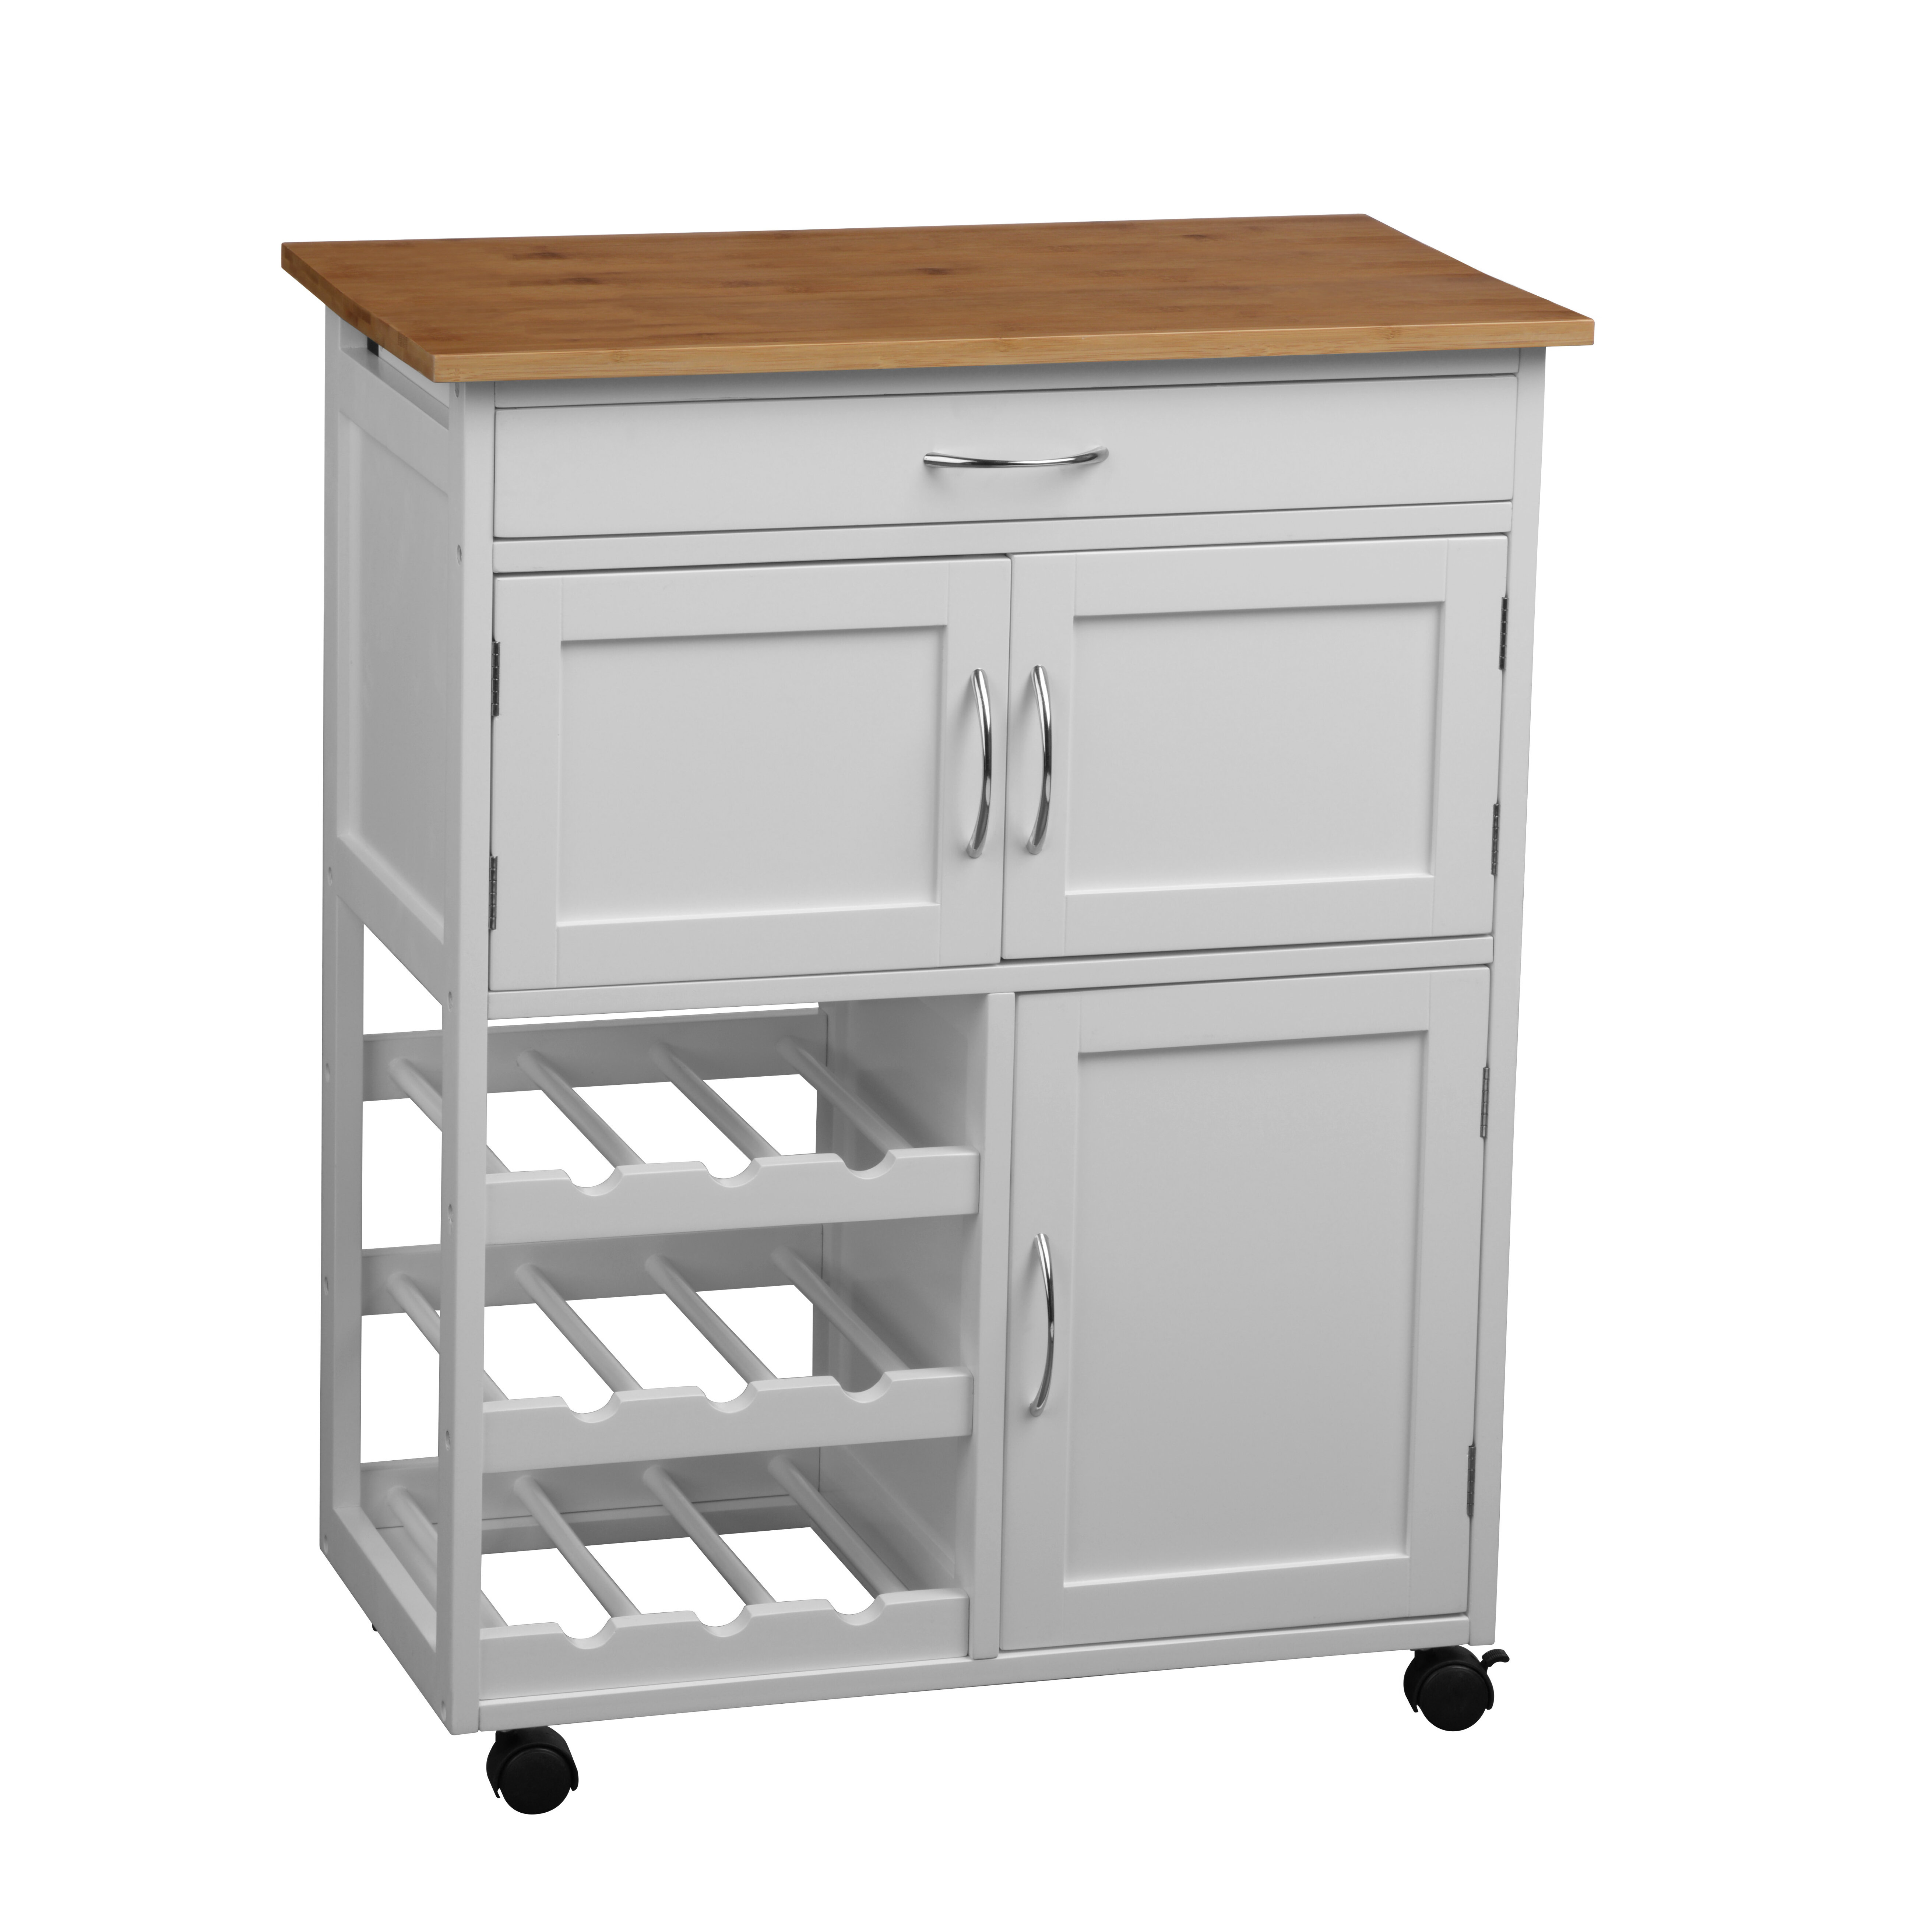 Riley Ave Jerome Kitchen Trolley Reviews Wayfair Co Uk